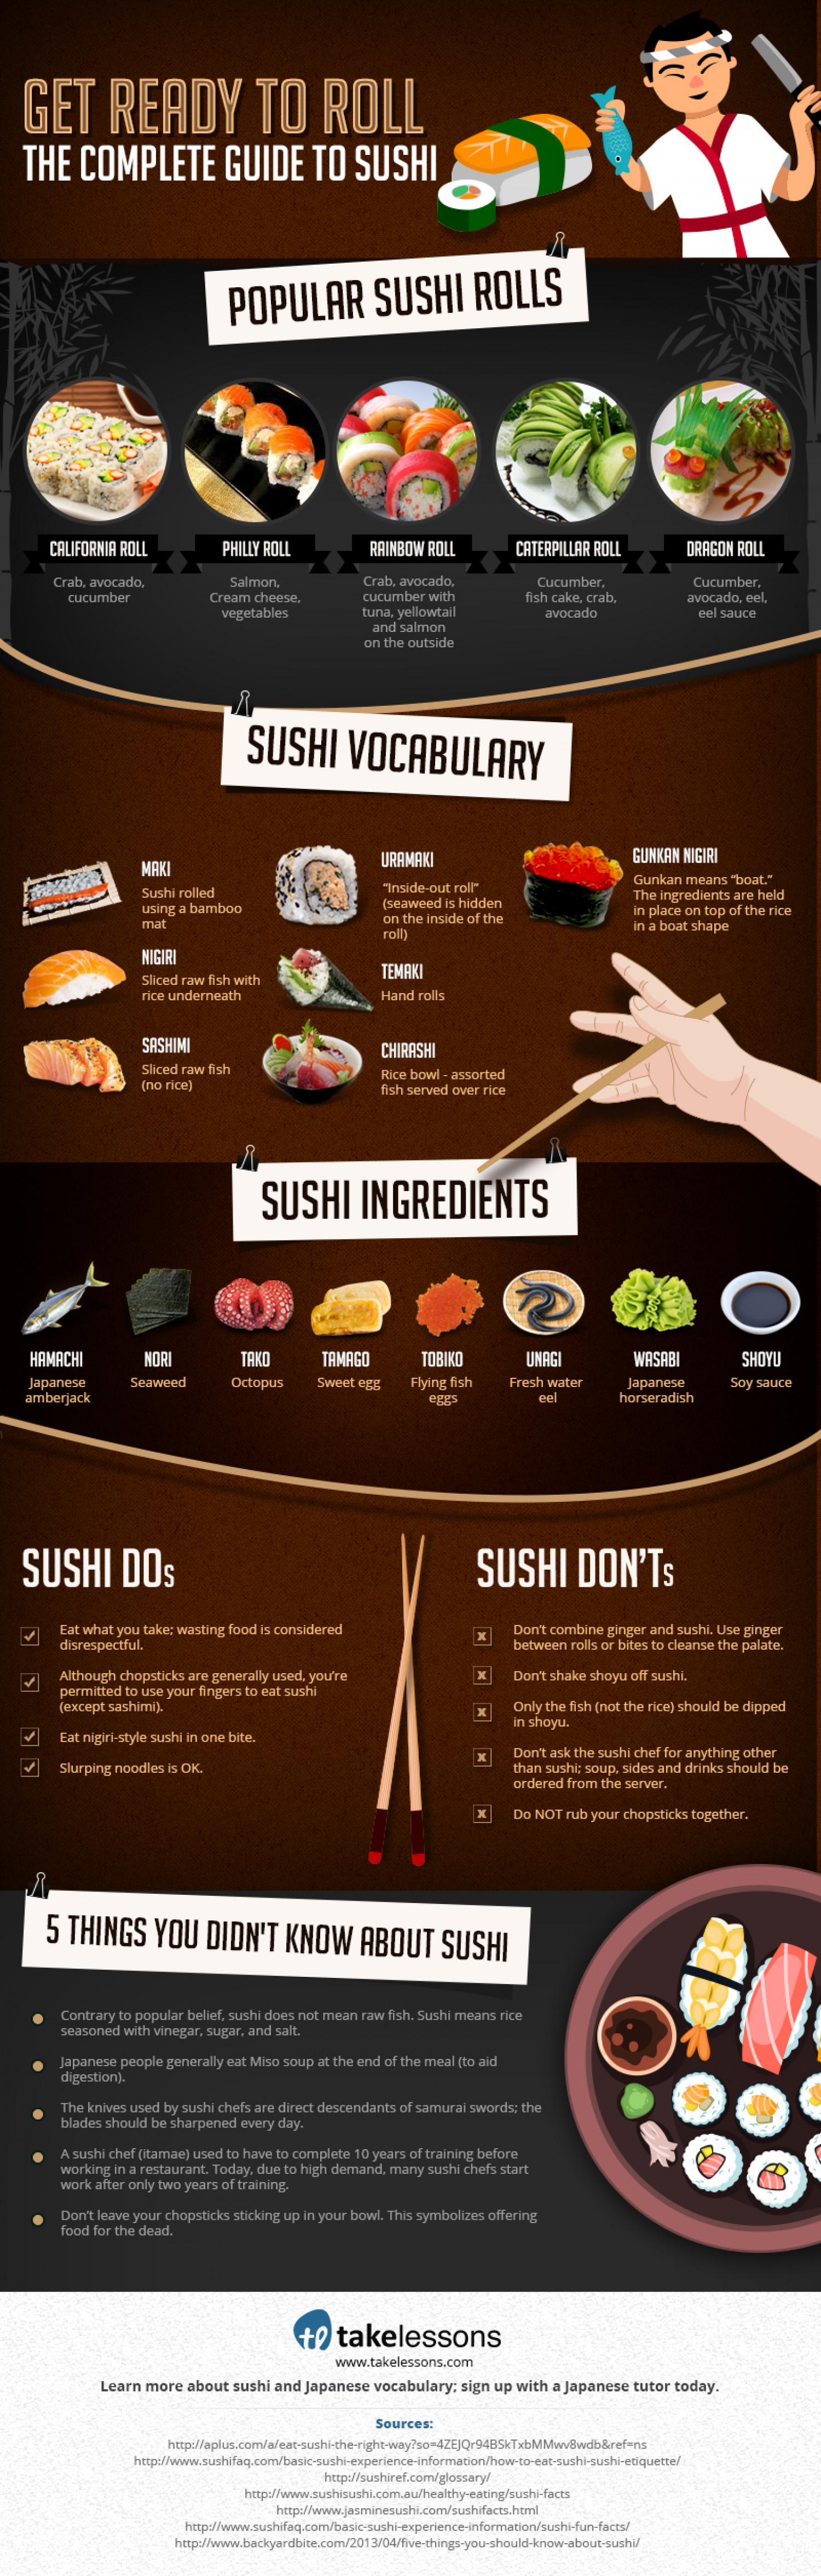 Get Ready to Roll The Complete Guide to Sushi